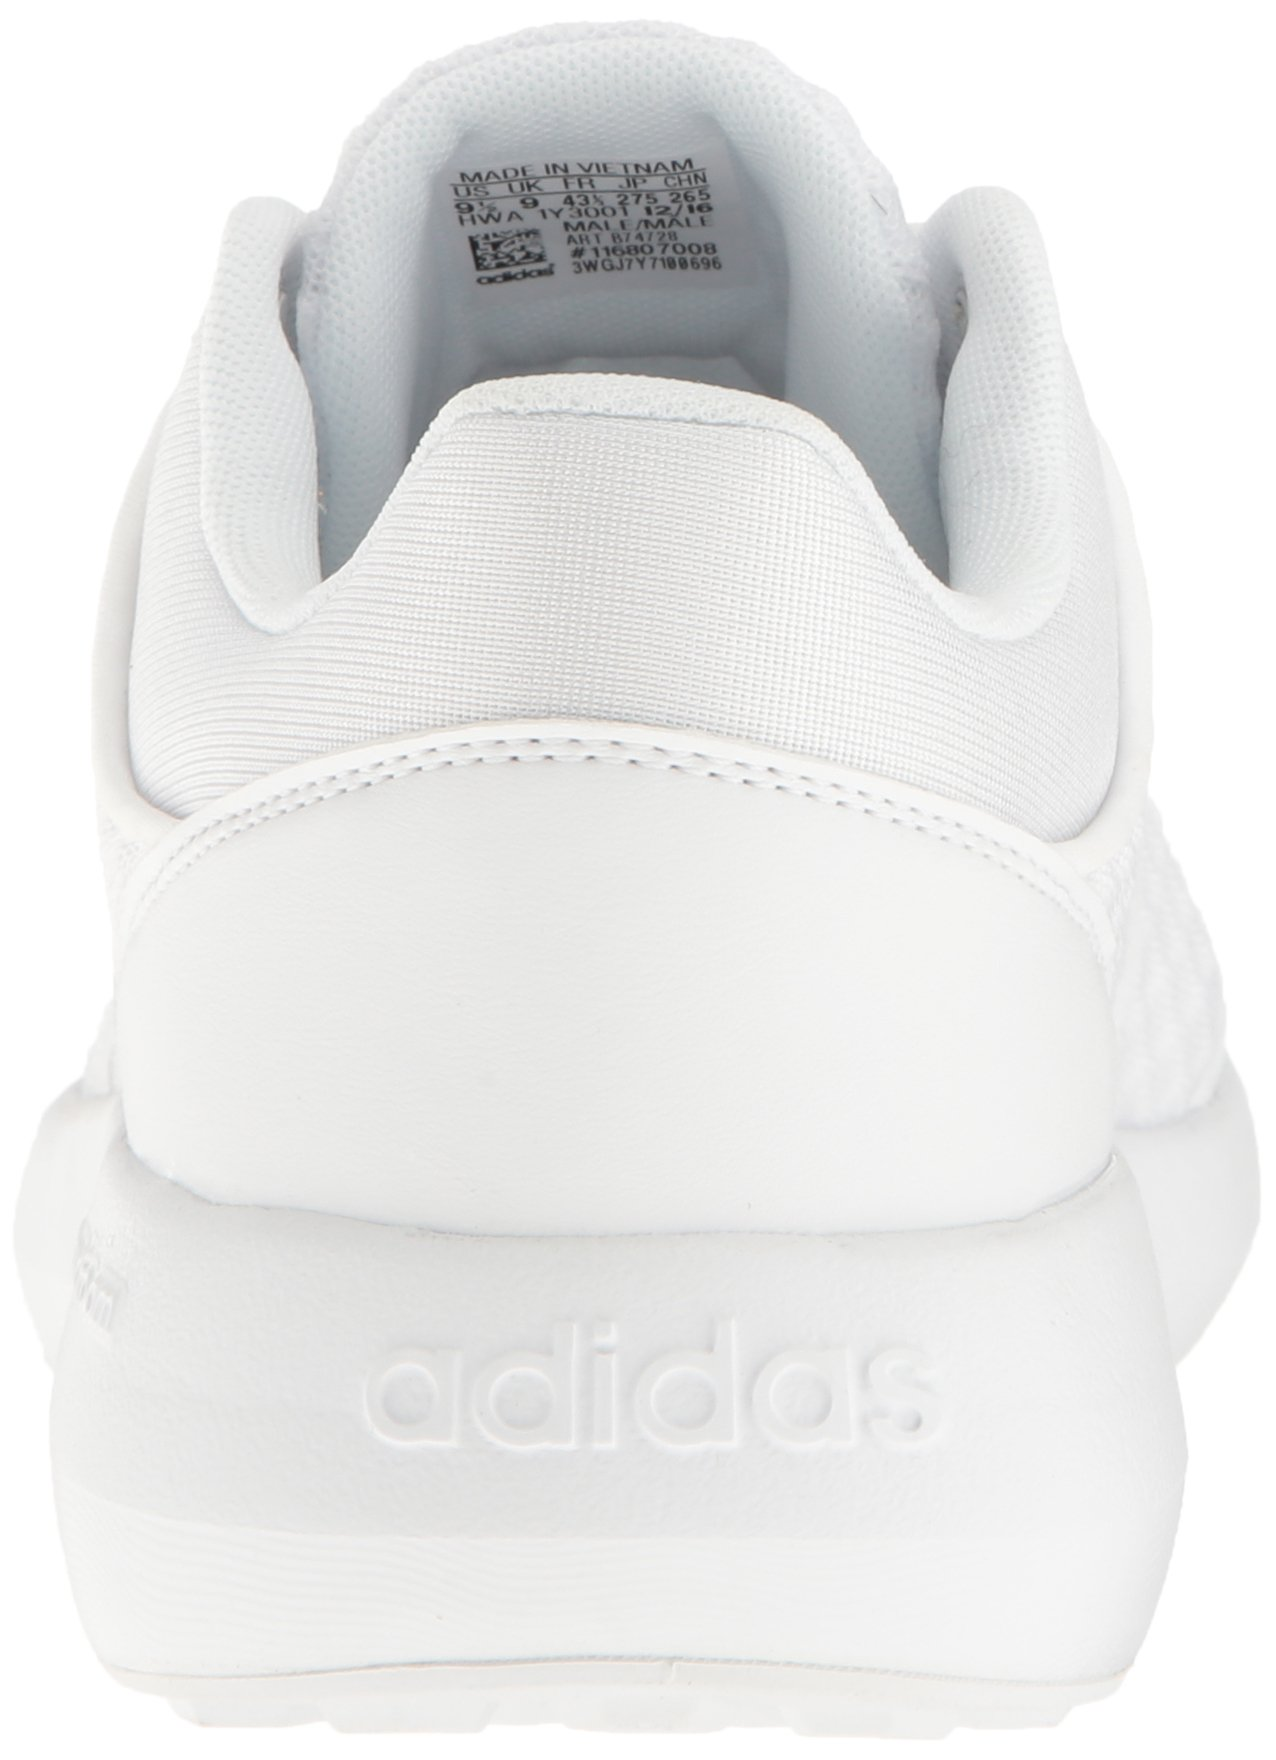 adidas Men's Cloudfoam Race Running Shoe, White/Clear Onix, 9 D-Medium by adidas (Image #2)